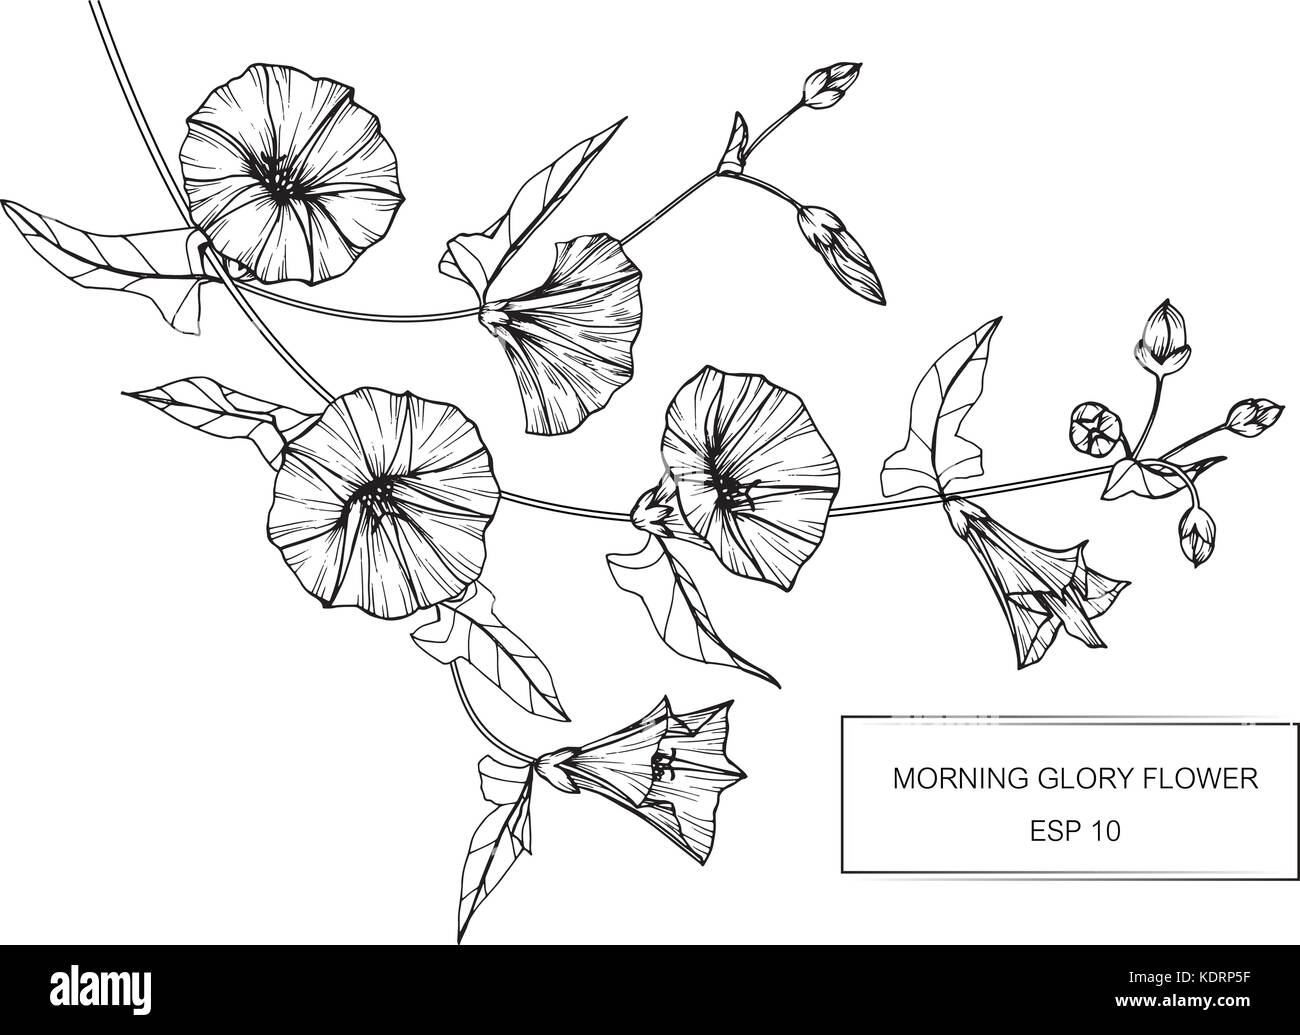 morning glory flower black and white stock photos amp images